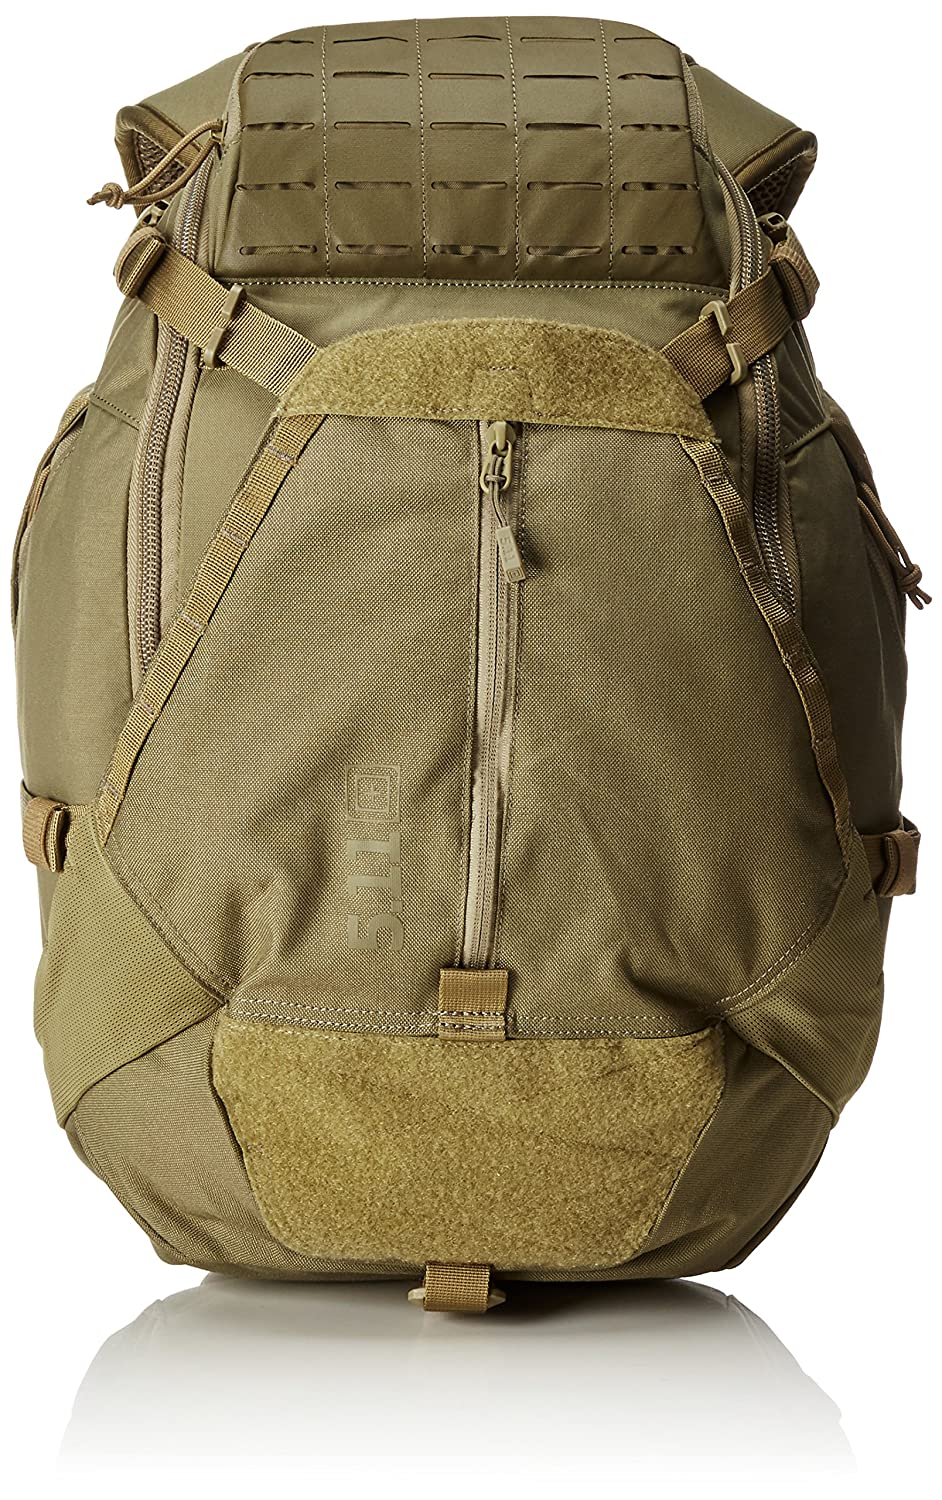 5.11 Tactical Havoc 30 Backpack, MOLLE 25L, 500D 1050D Nylon 1.5 Waist Belt w Ammo Armor Support, Style 56319